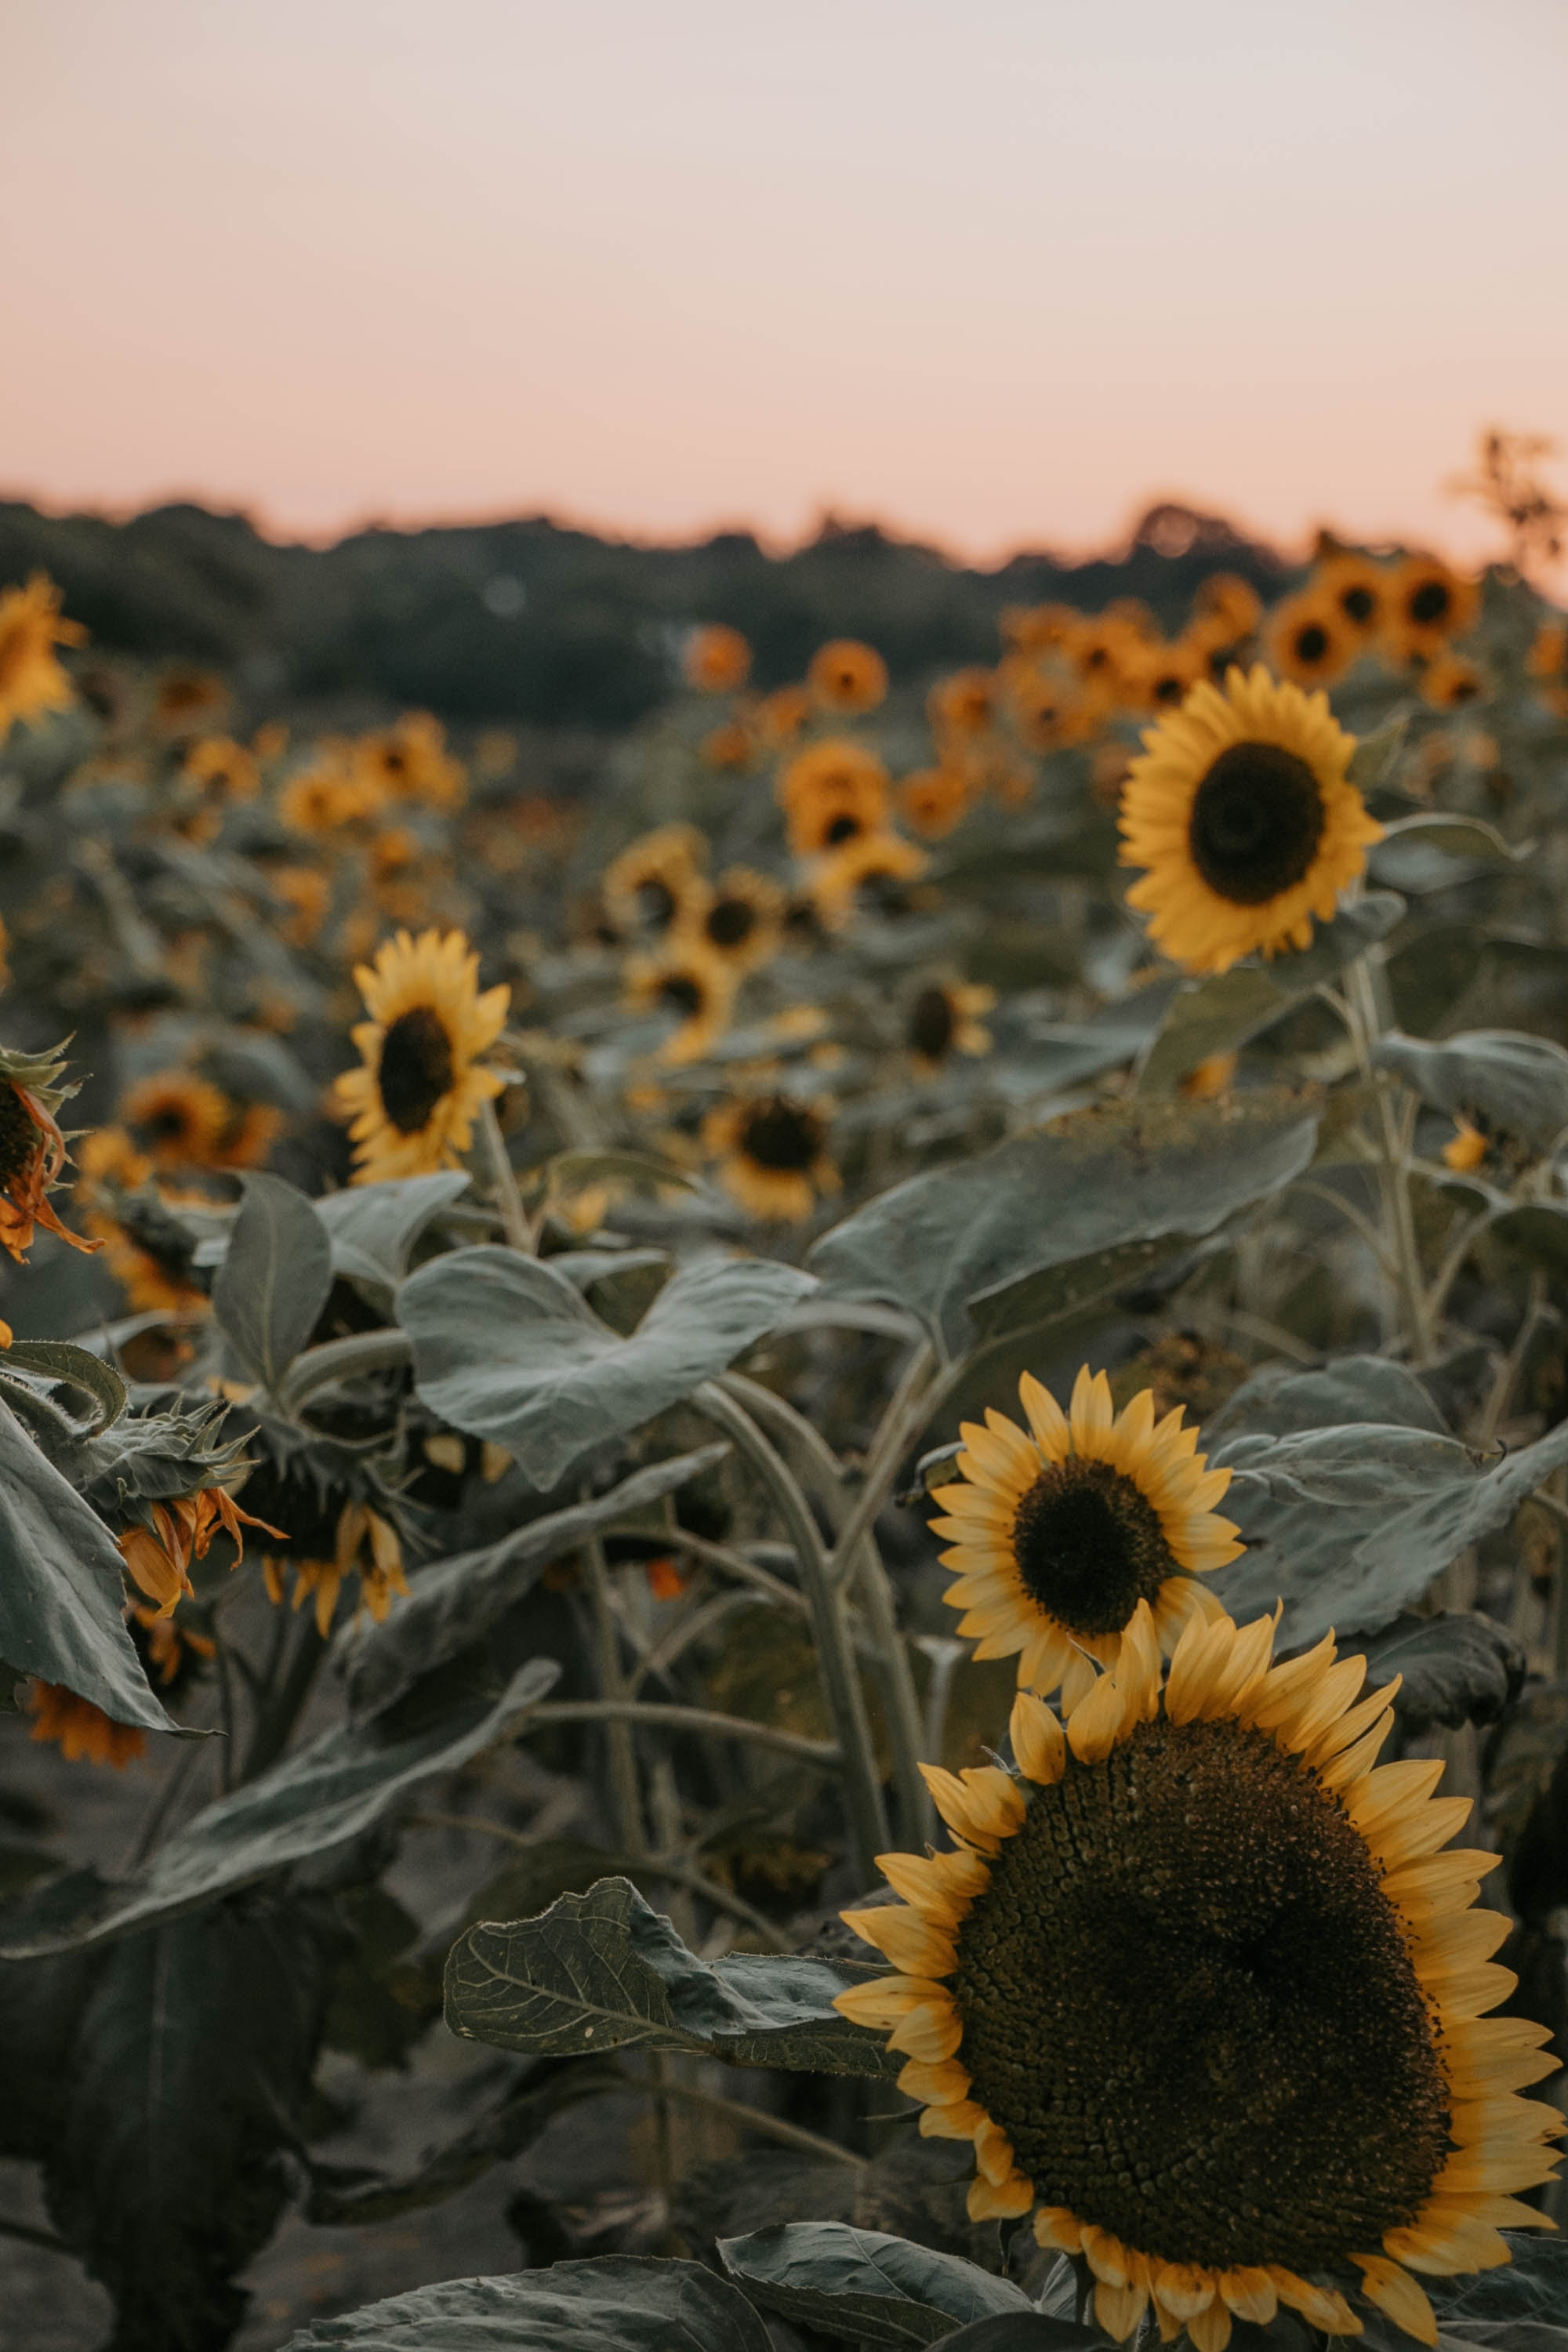 photo by Juliana arruda via unsplash